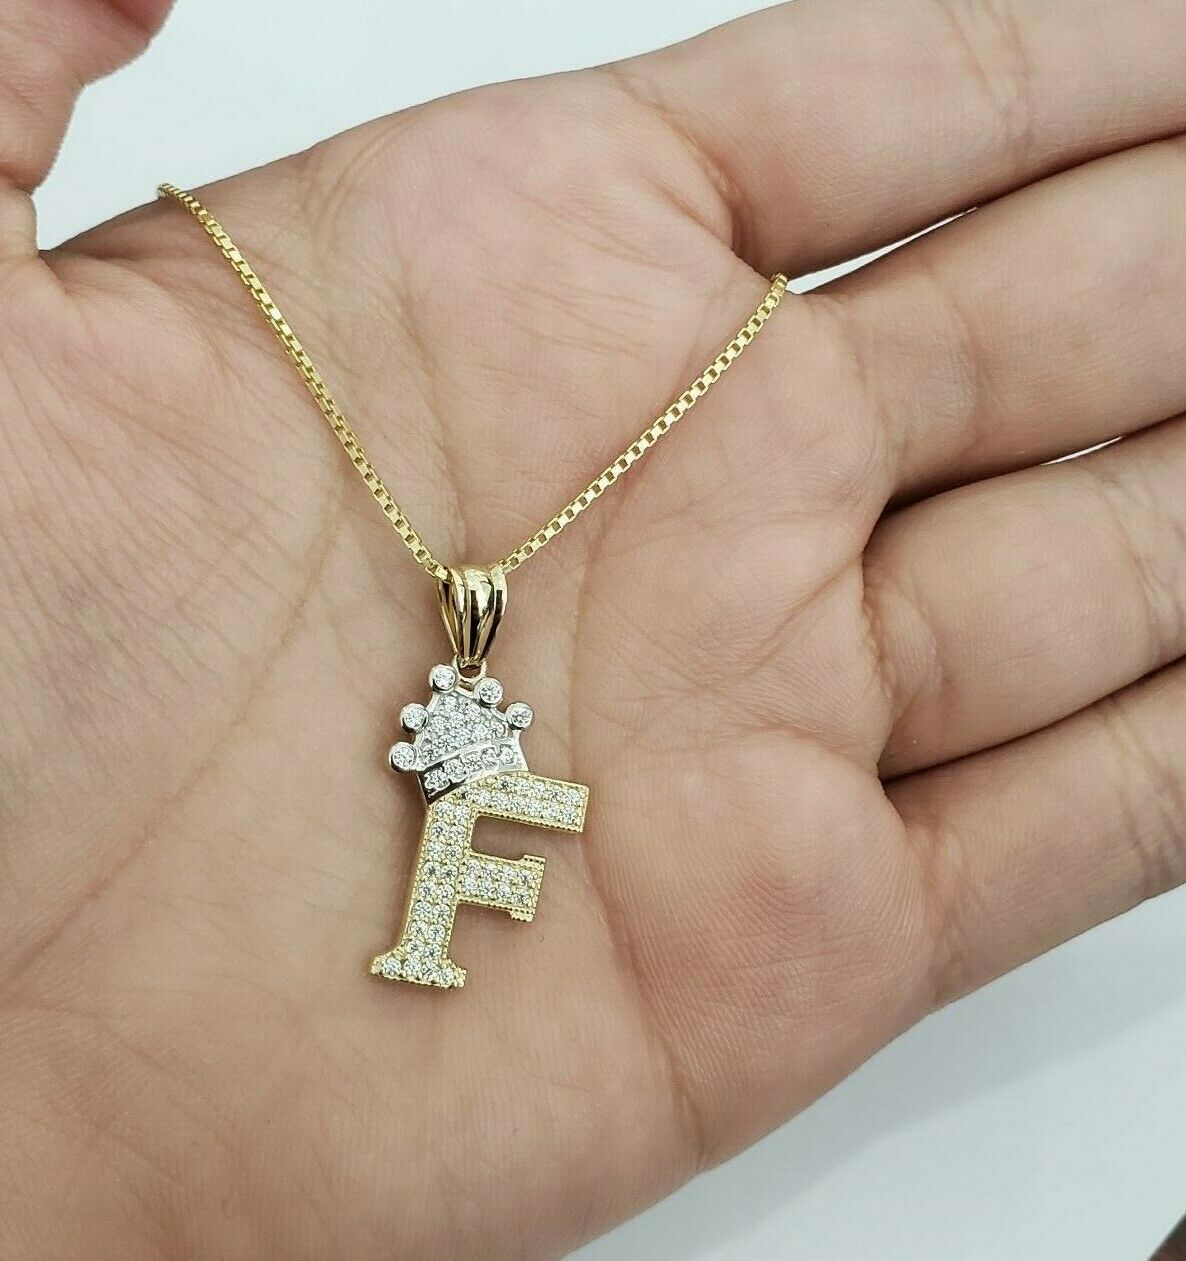 14k Yellow gold Crown Initial Alphabet Letter F Pendant Charm King Free Chain